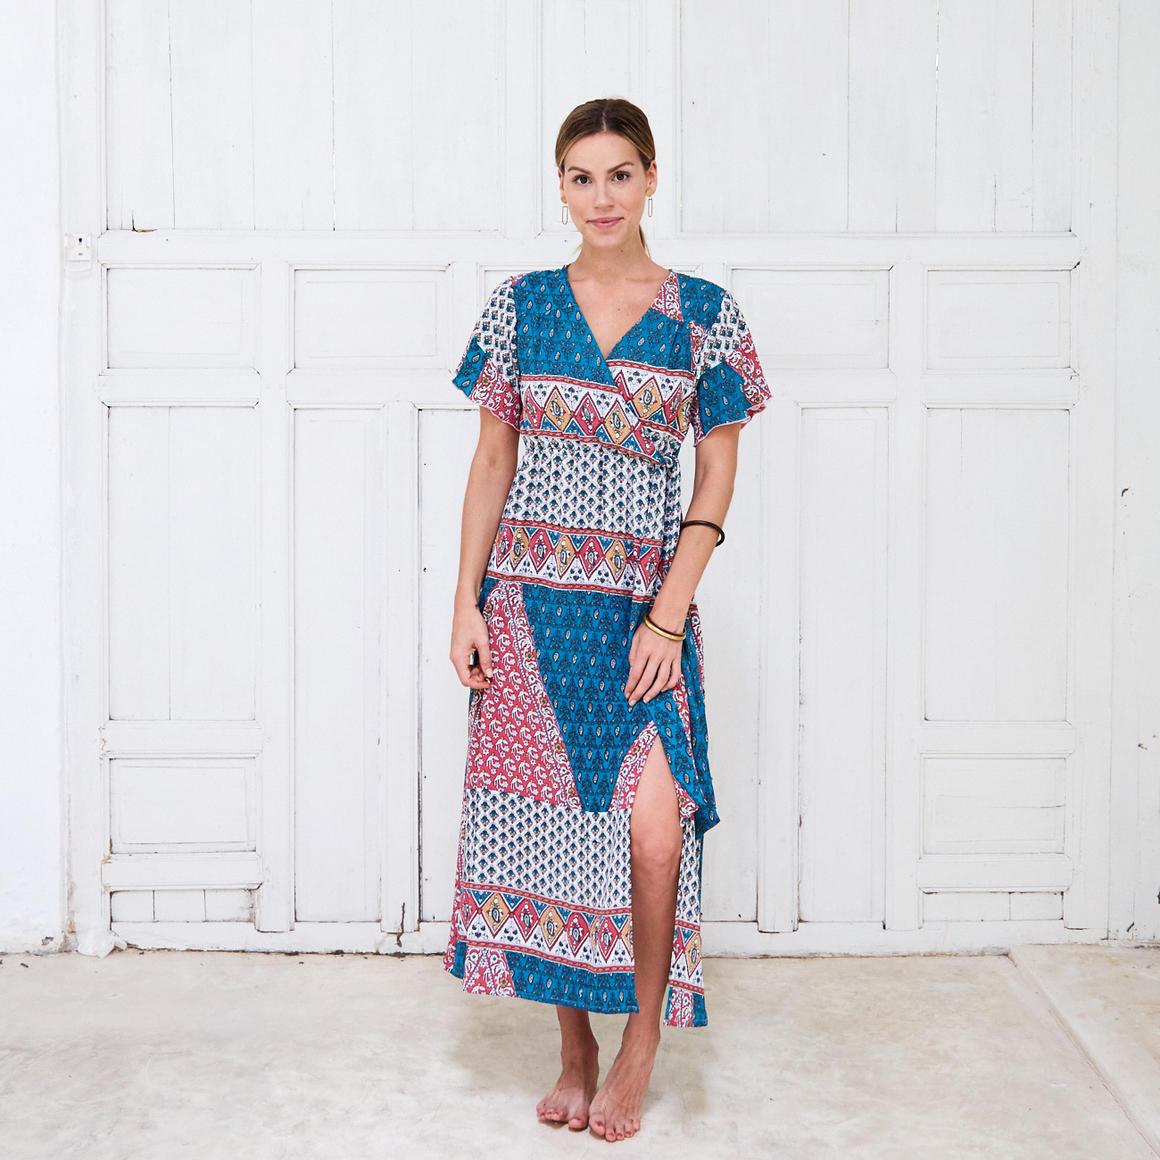 Turquoise cross over dress - 2 pack | Trada Marketplace